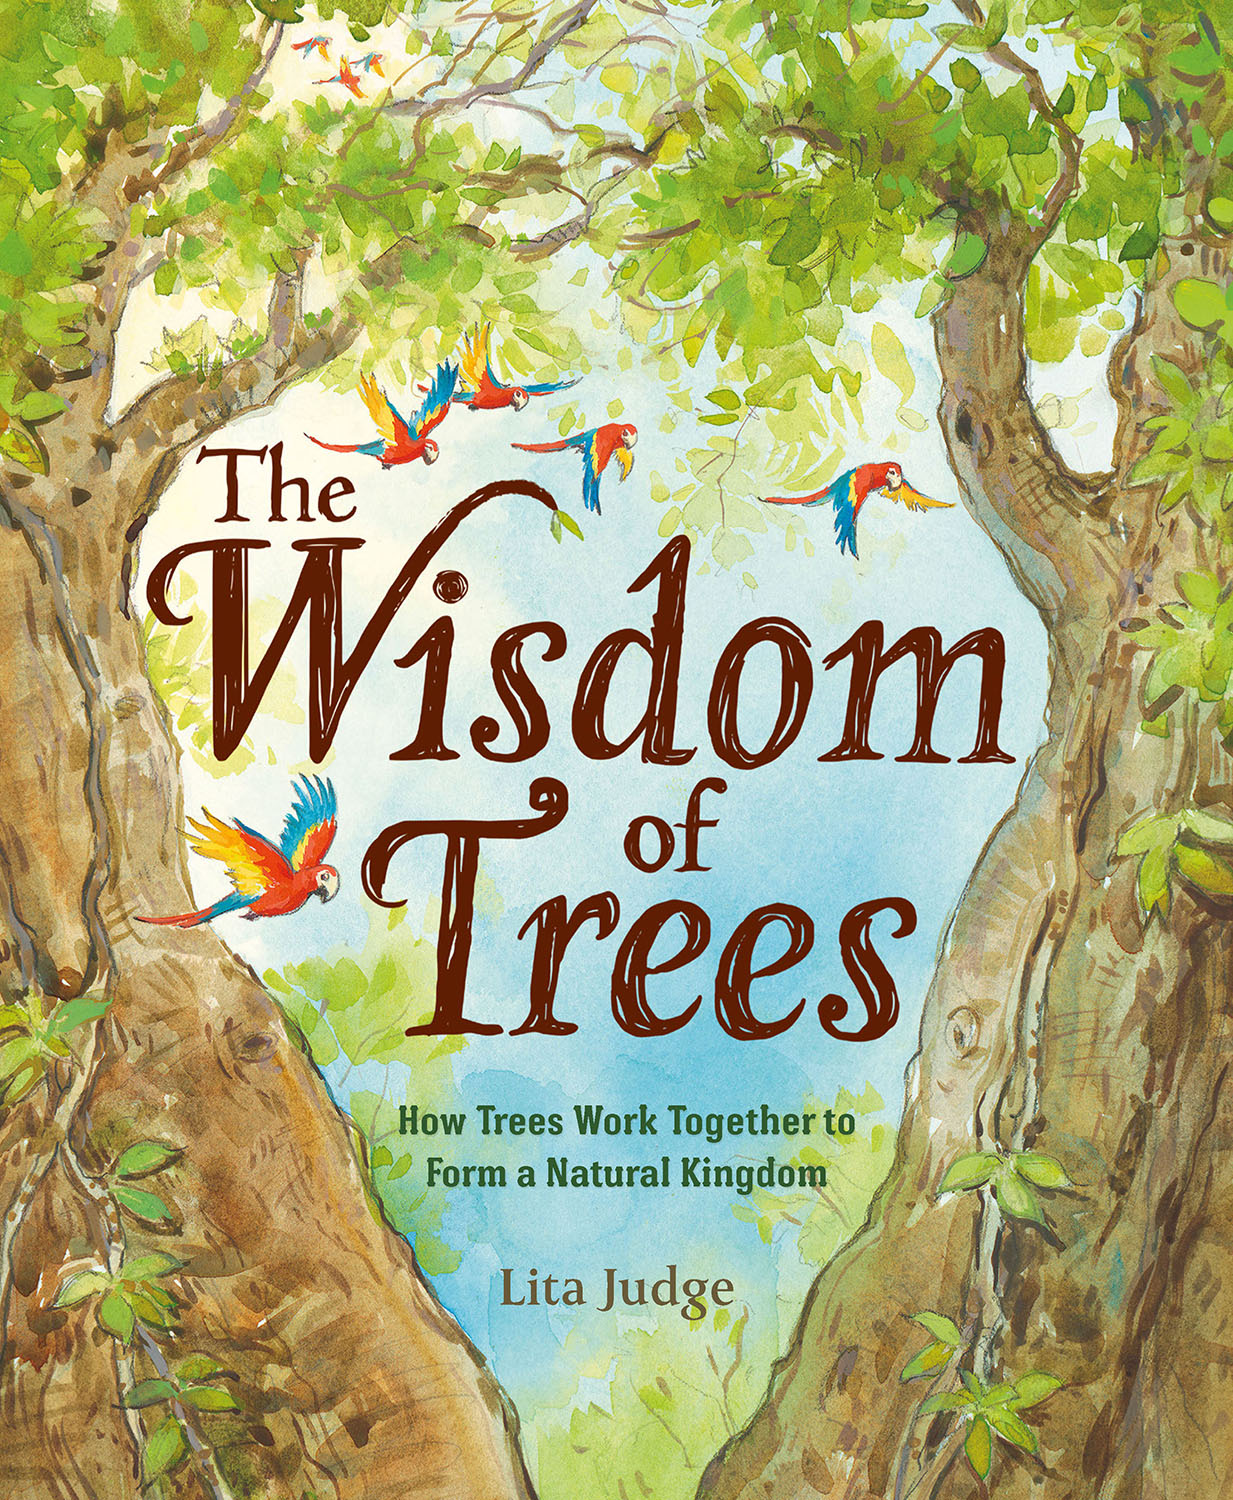 The Wisdom of Trees by Lita Judge